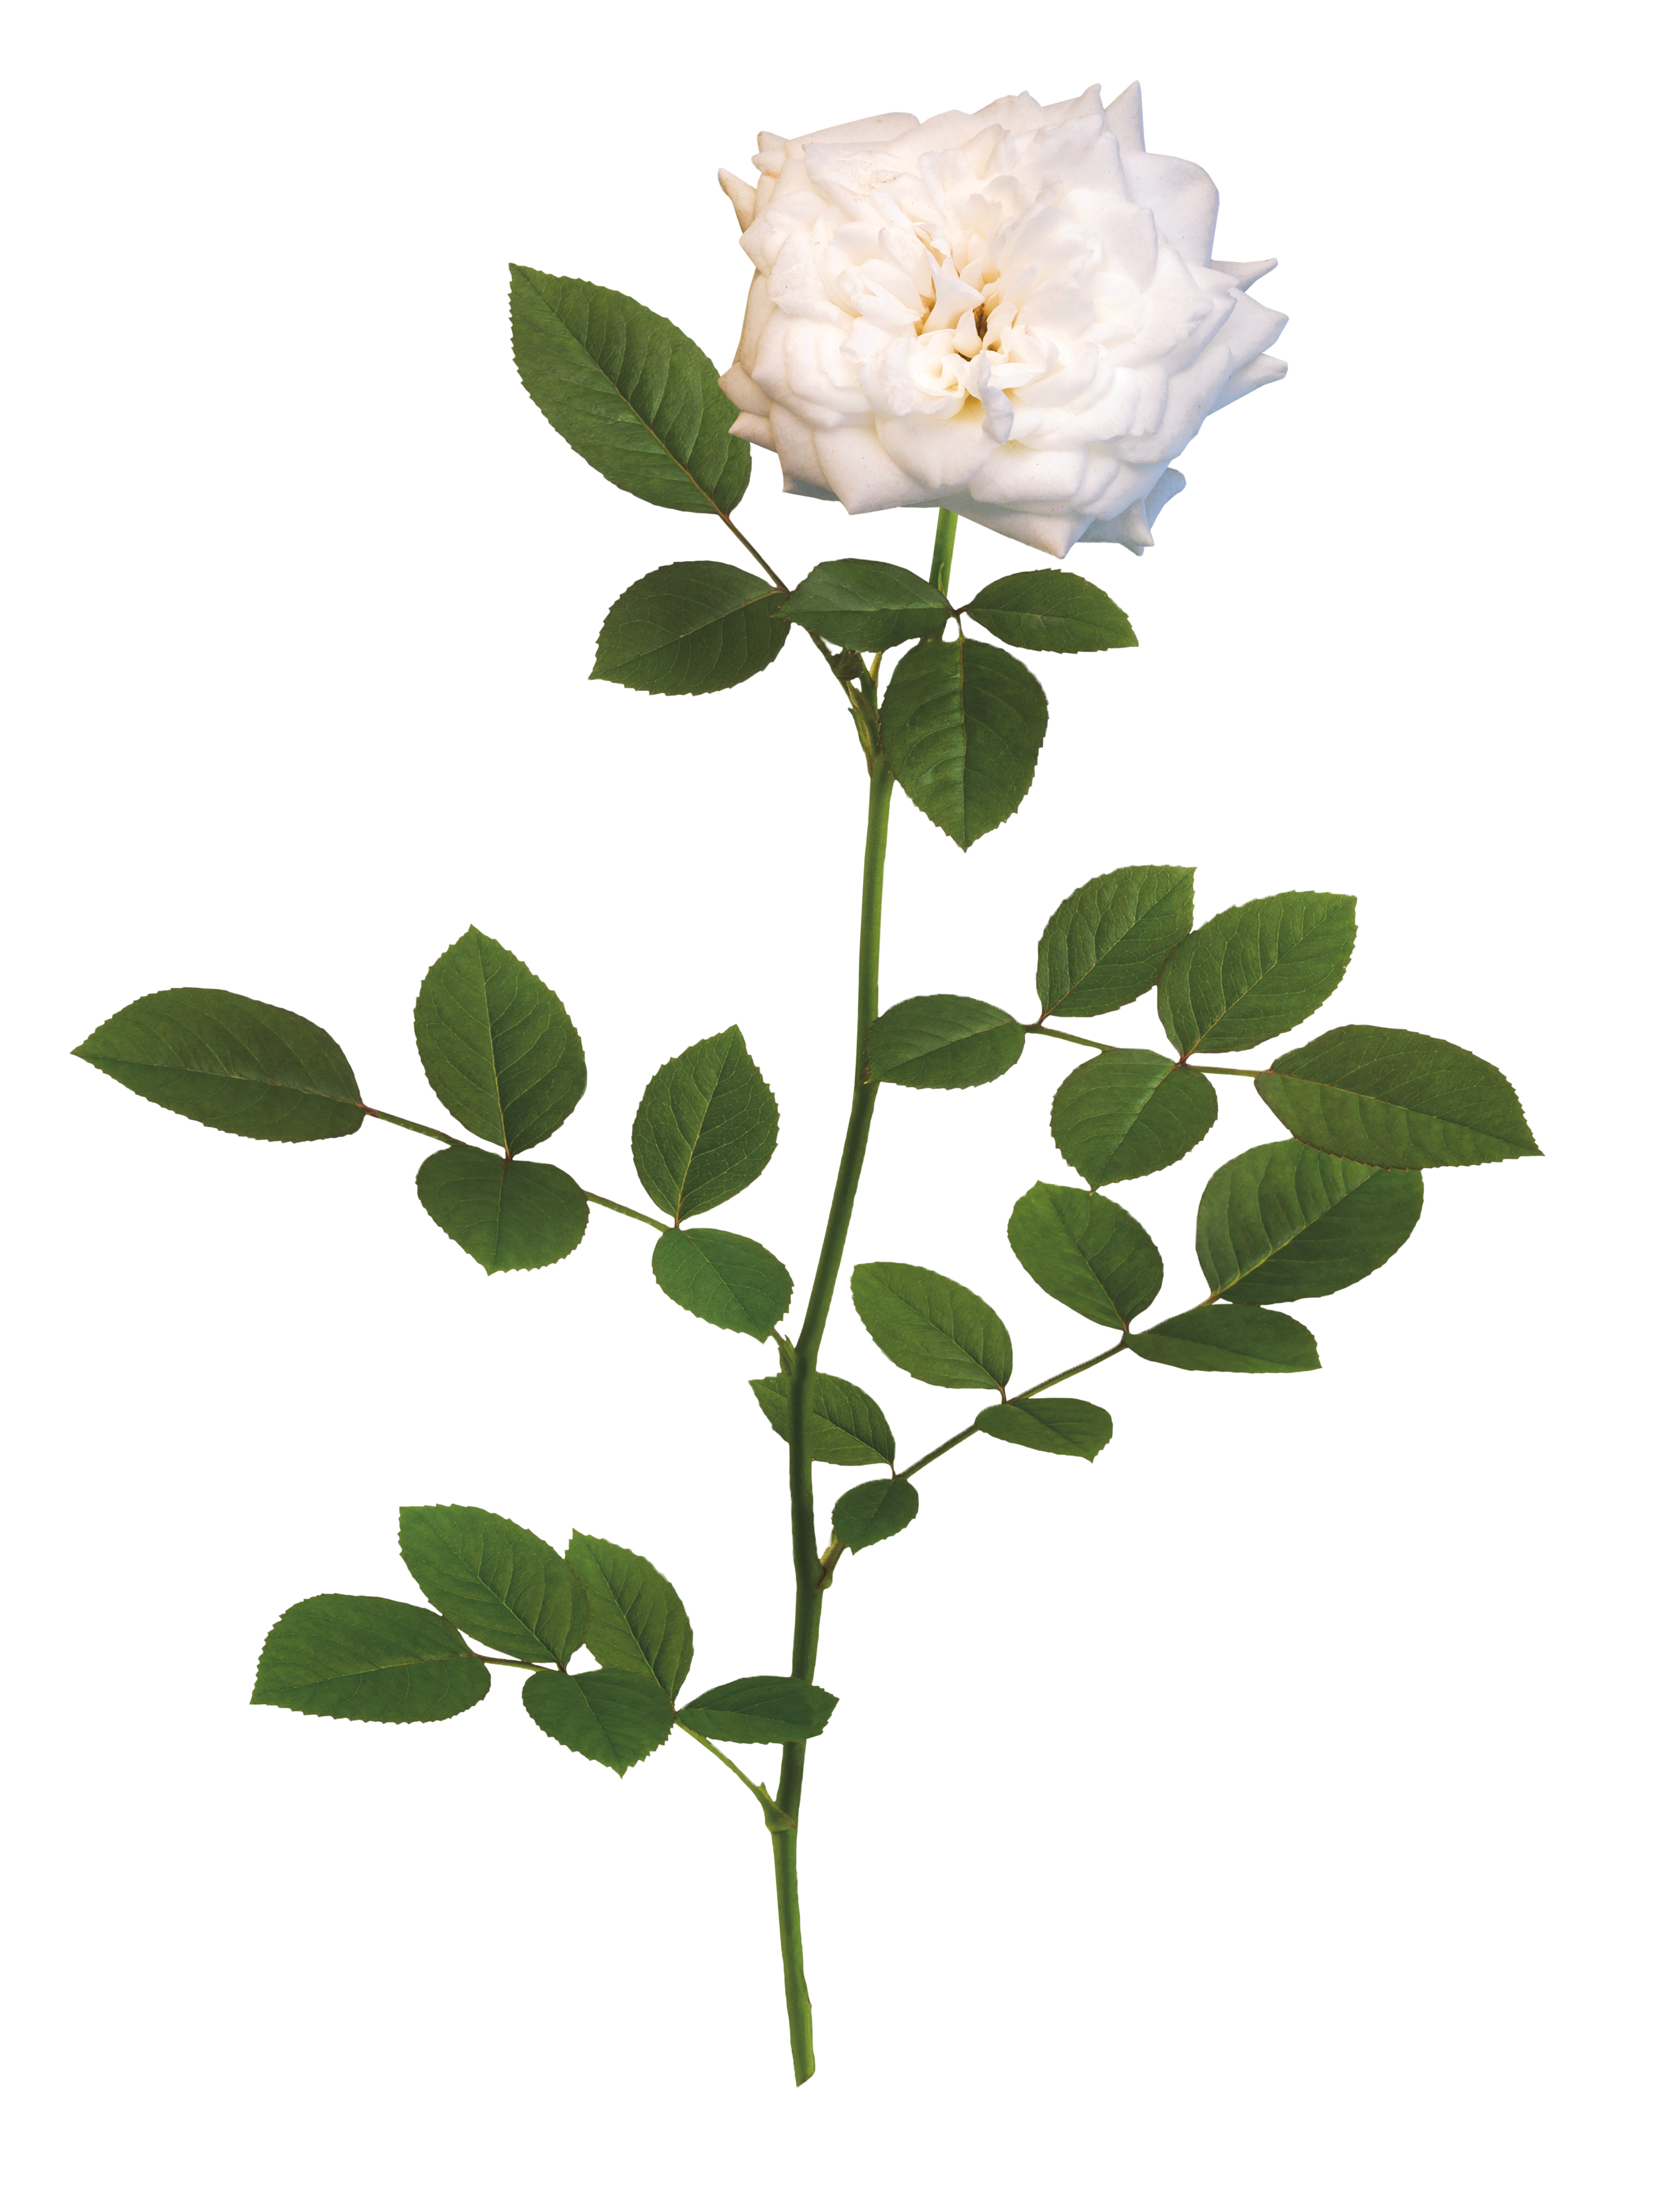 The White Drift® Rose - 'Meizorland' PPAFWhite Drift® has pure white, fully double flowers that are perfectly shaped like miniature roses. These impressive white blooms will brighten gardens of all shapes and styles. This variety can have slight coloration of Sweet Drift®.Zones: 4–11 | Exposure: Full sun | Habit: 1½' h x 2½' w